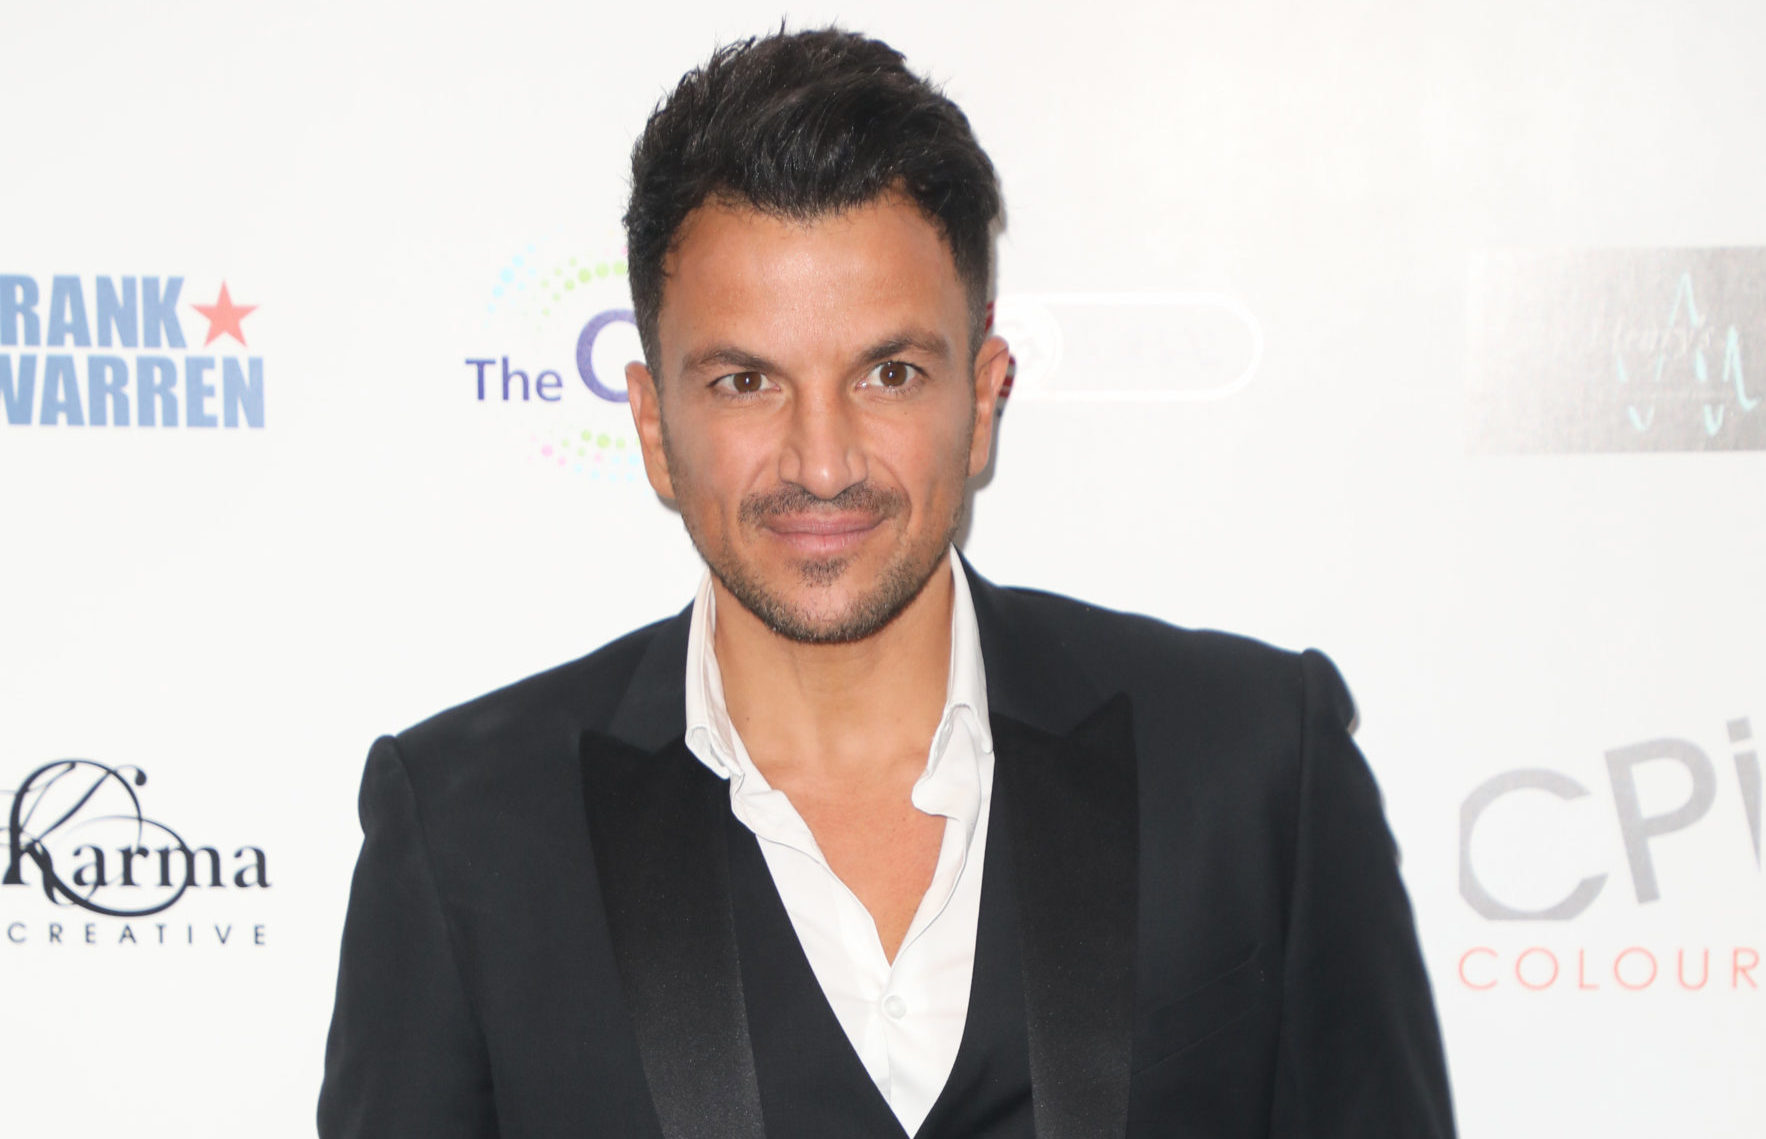 Peter Andre joins forces with Gary Barlow to perform lockdown duet